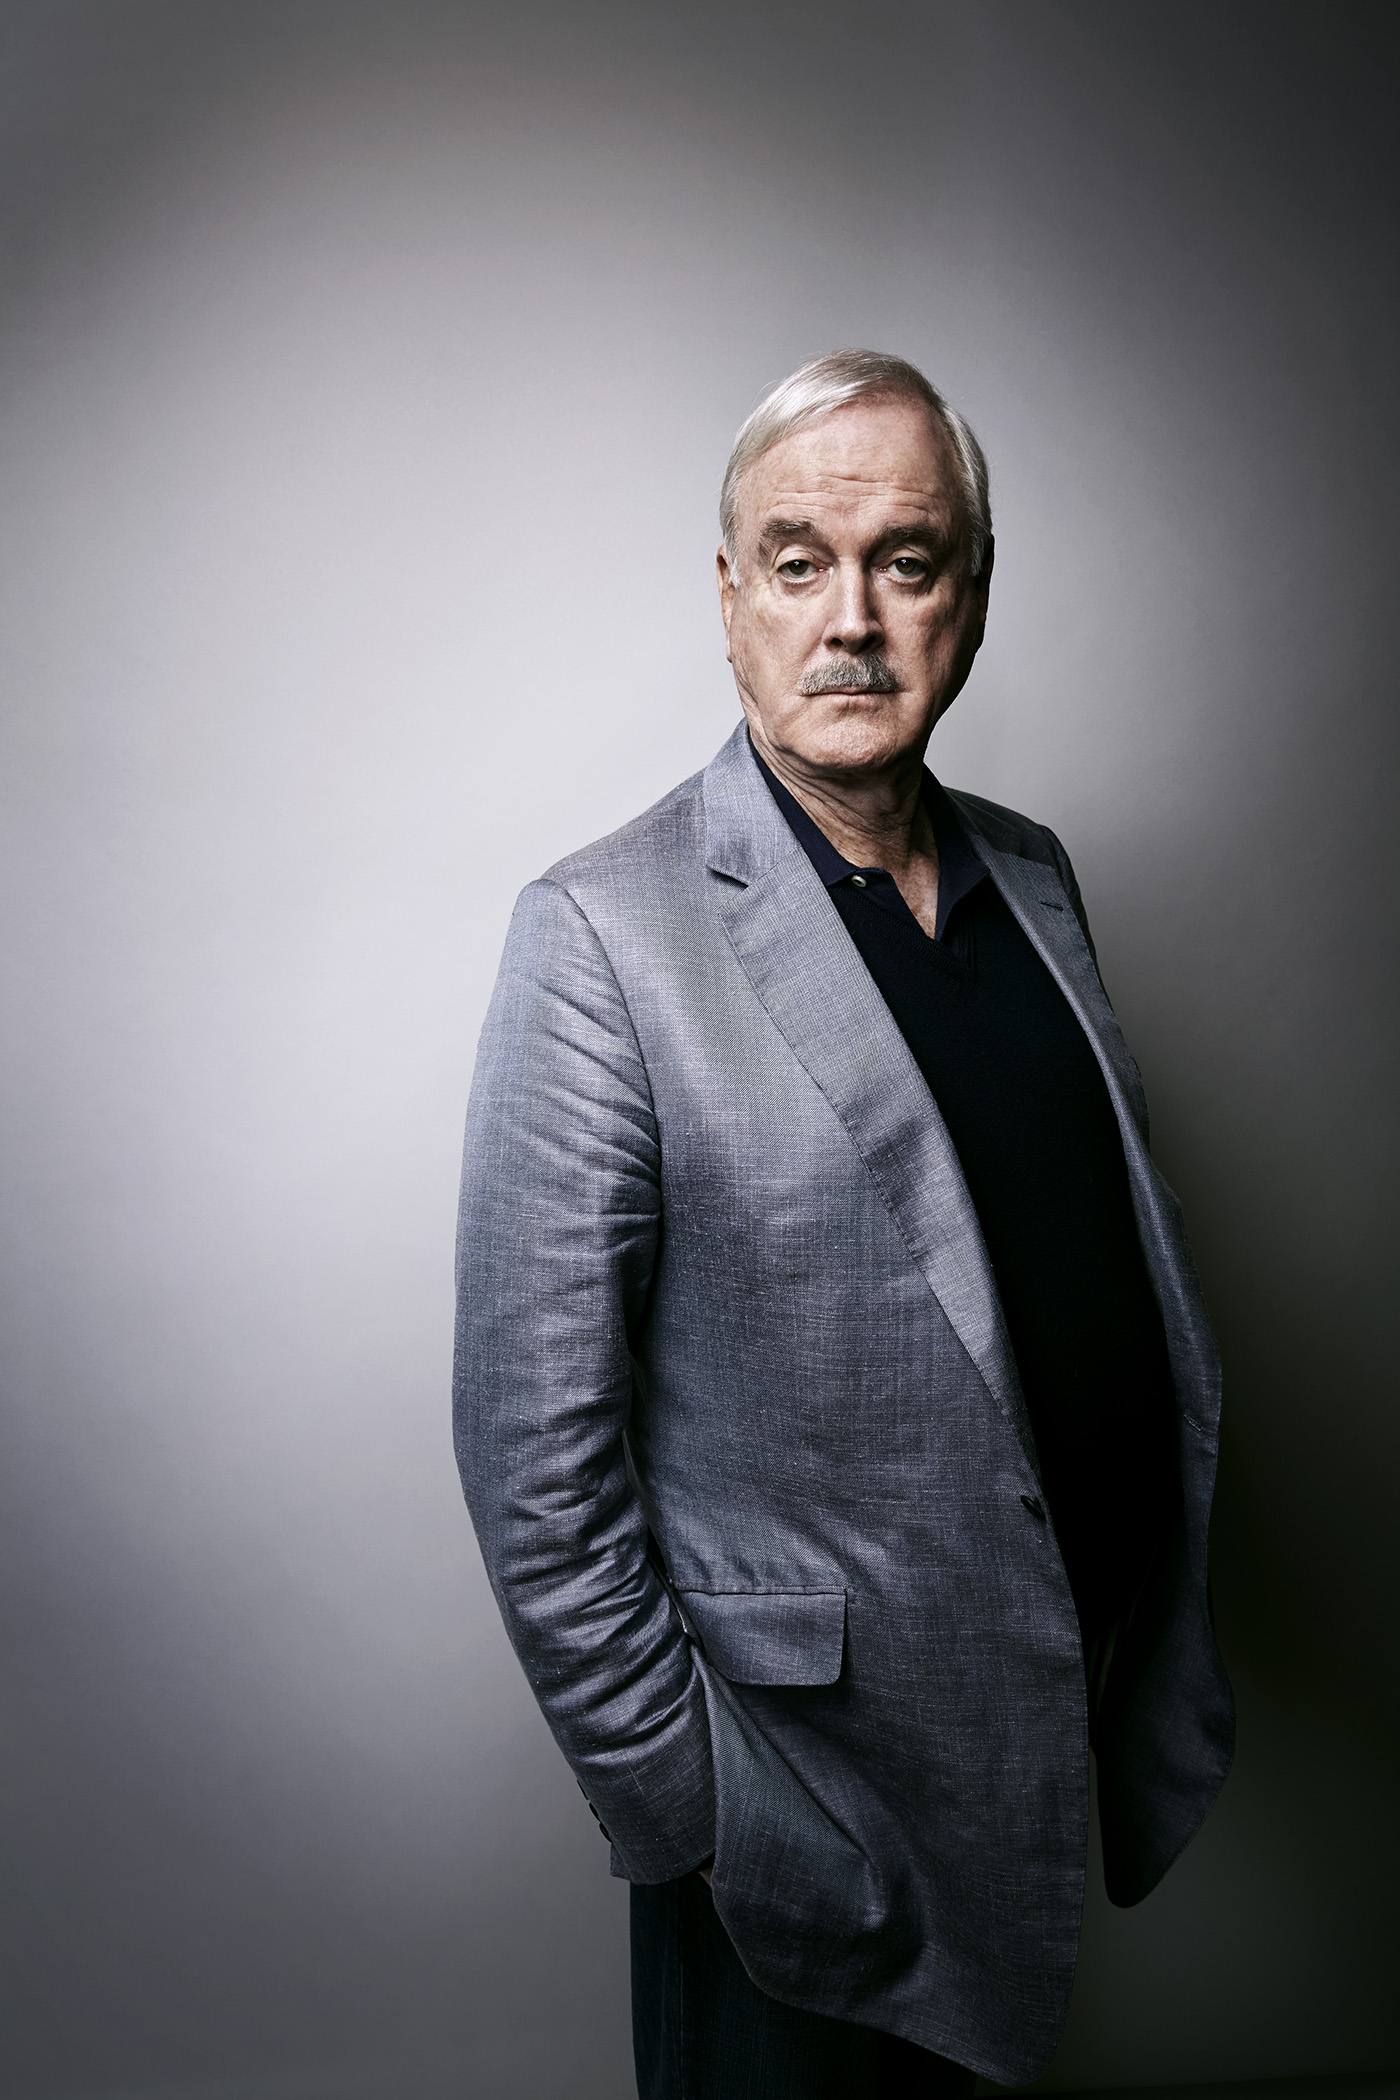 john cleese letterjohn cleese height, john cleese young, john cleese monty python, john cleese letter, john cleese twitter, john cleese brexit, john cleese and eric idle, john cleese wife, john cleese letter america, john cleese bond, john cleese autobiography, john cleese dc, john cleese pdf, john cleese show, john cleese in harry potter, john cleese speaking russian, john cleese football team, john cleese so anyway pdf, john cleese wikipedia, john cleese cheese